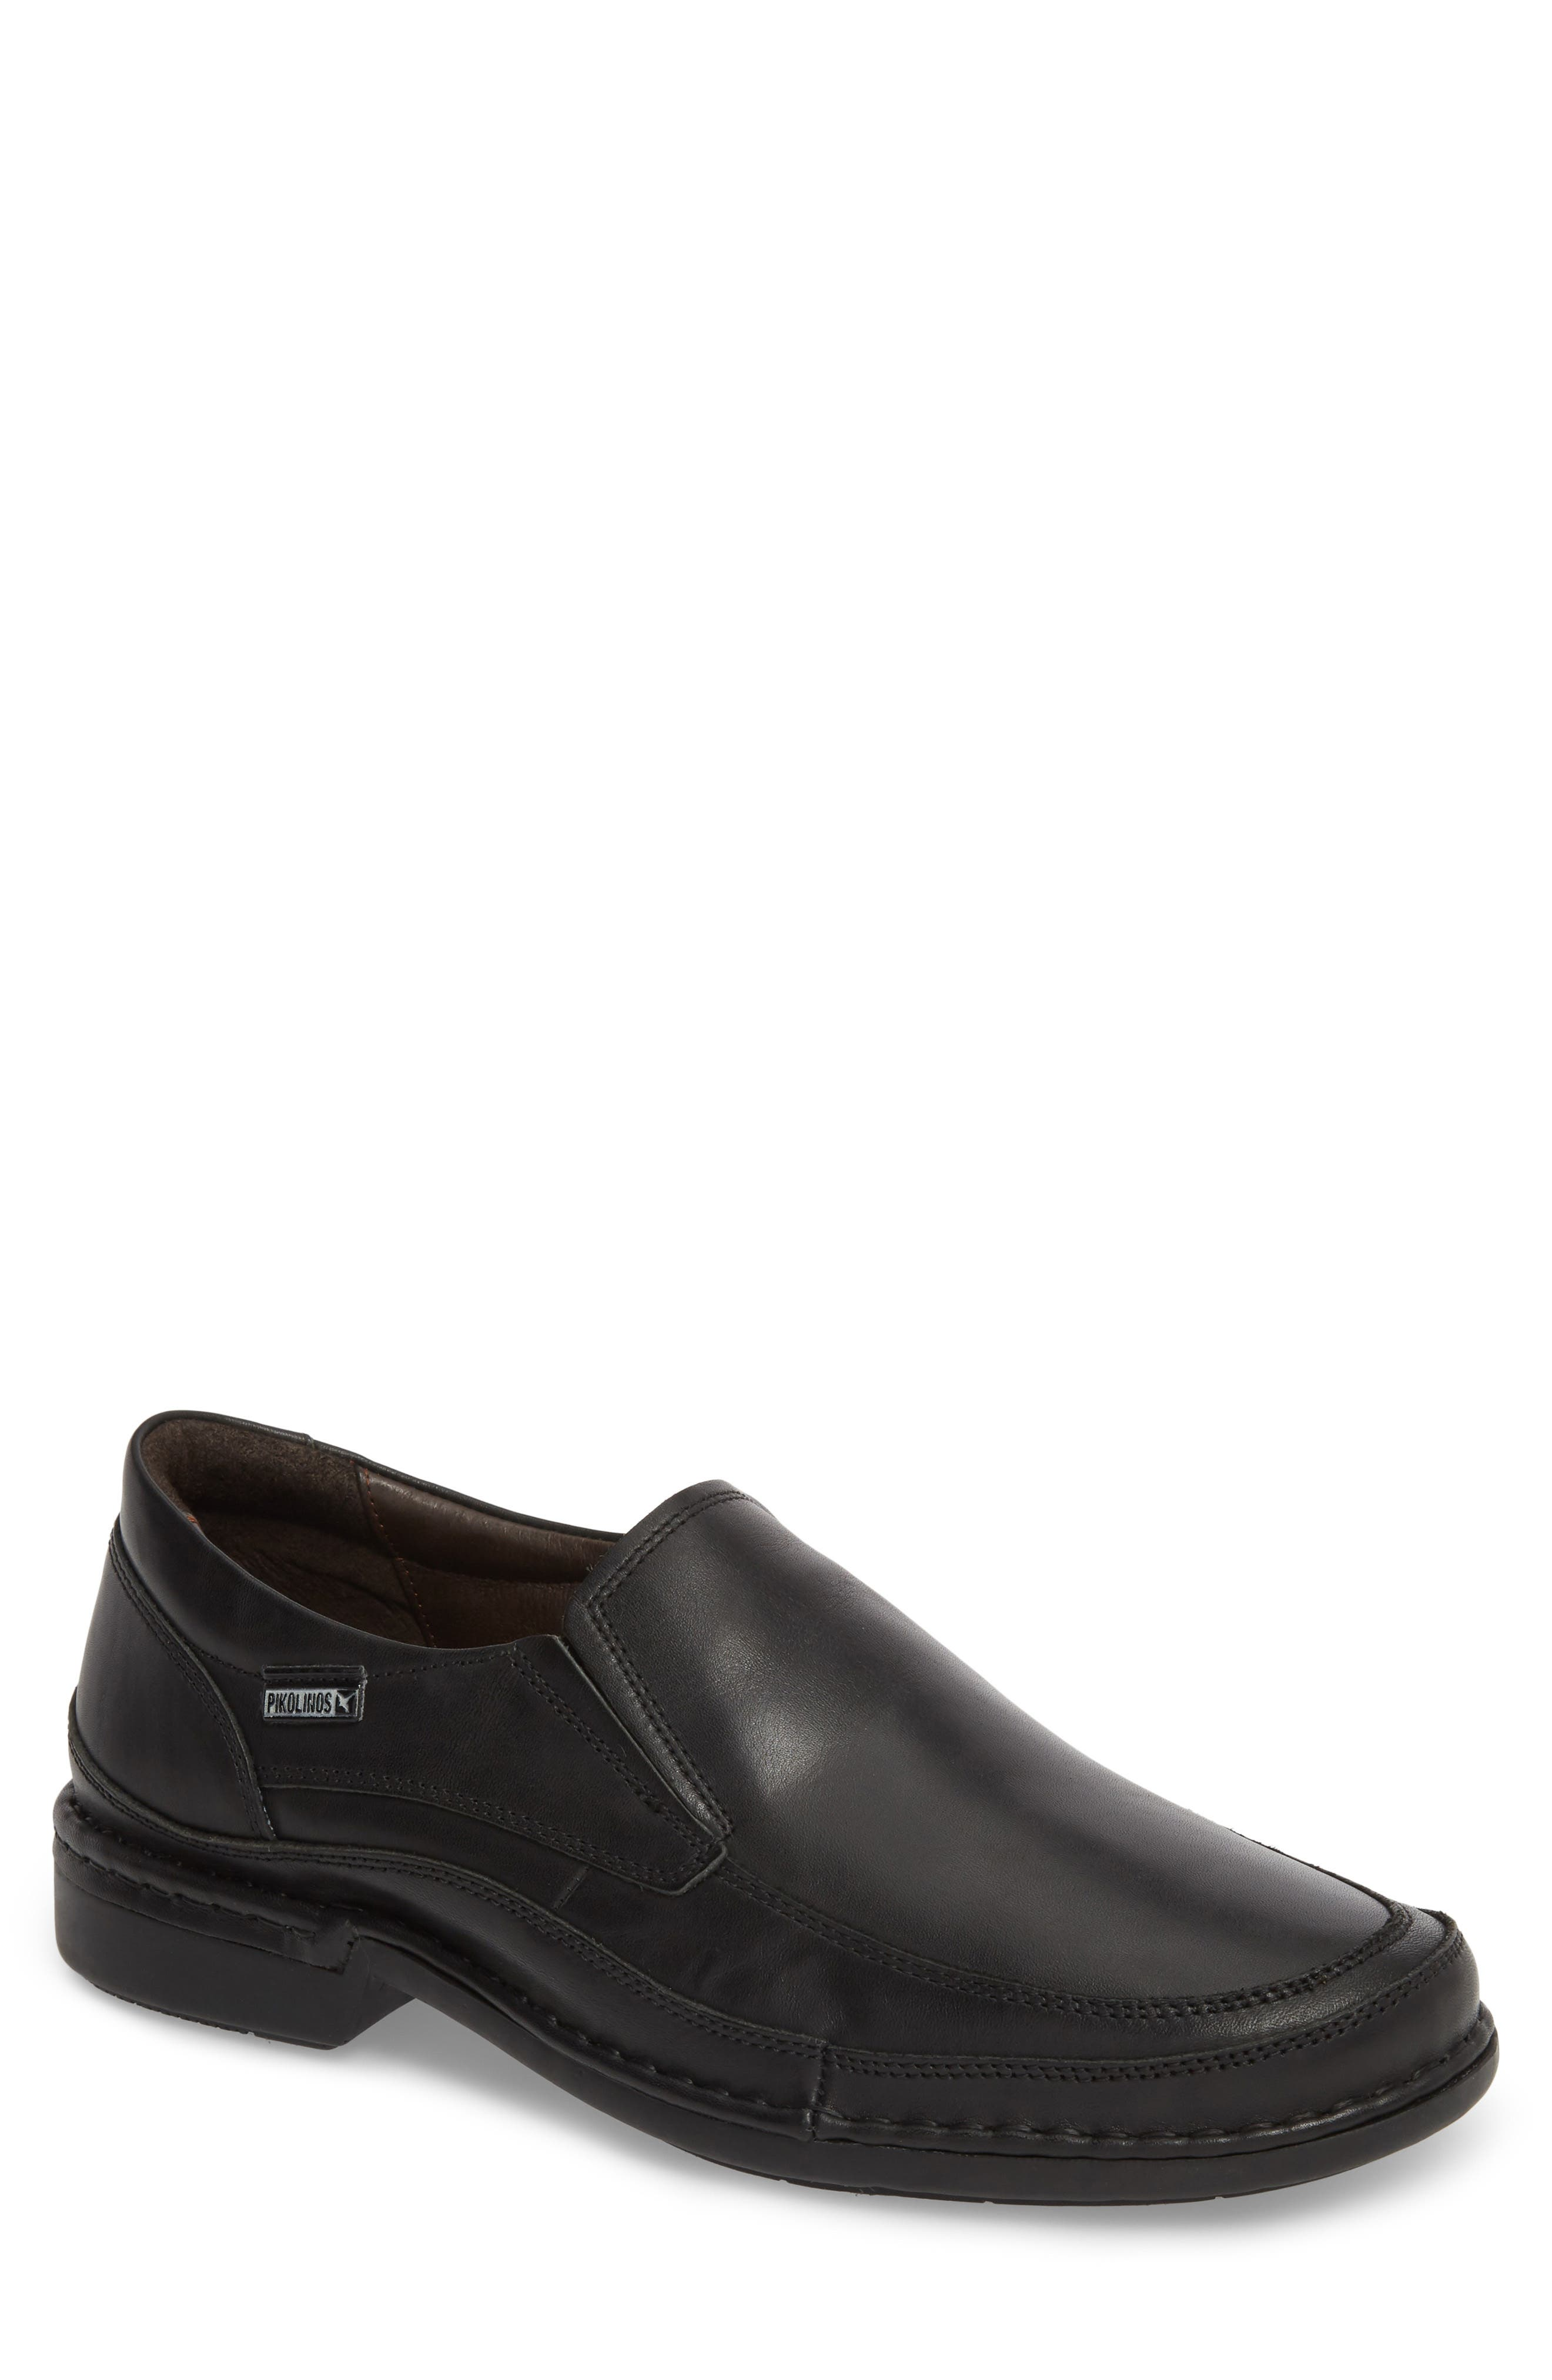 'Oviedo' Slip-On,                             Main thumbnail 1, color,                             Black Leather